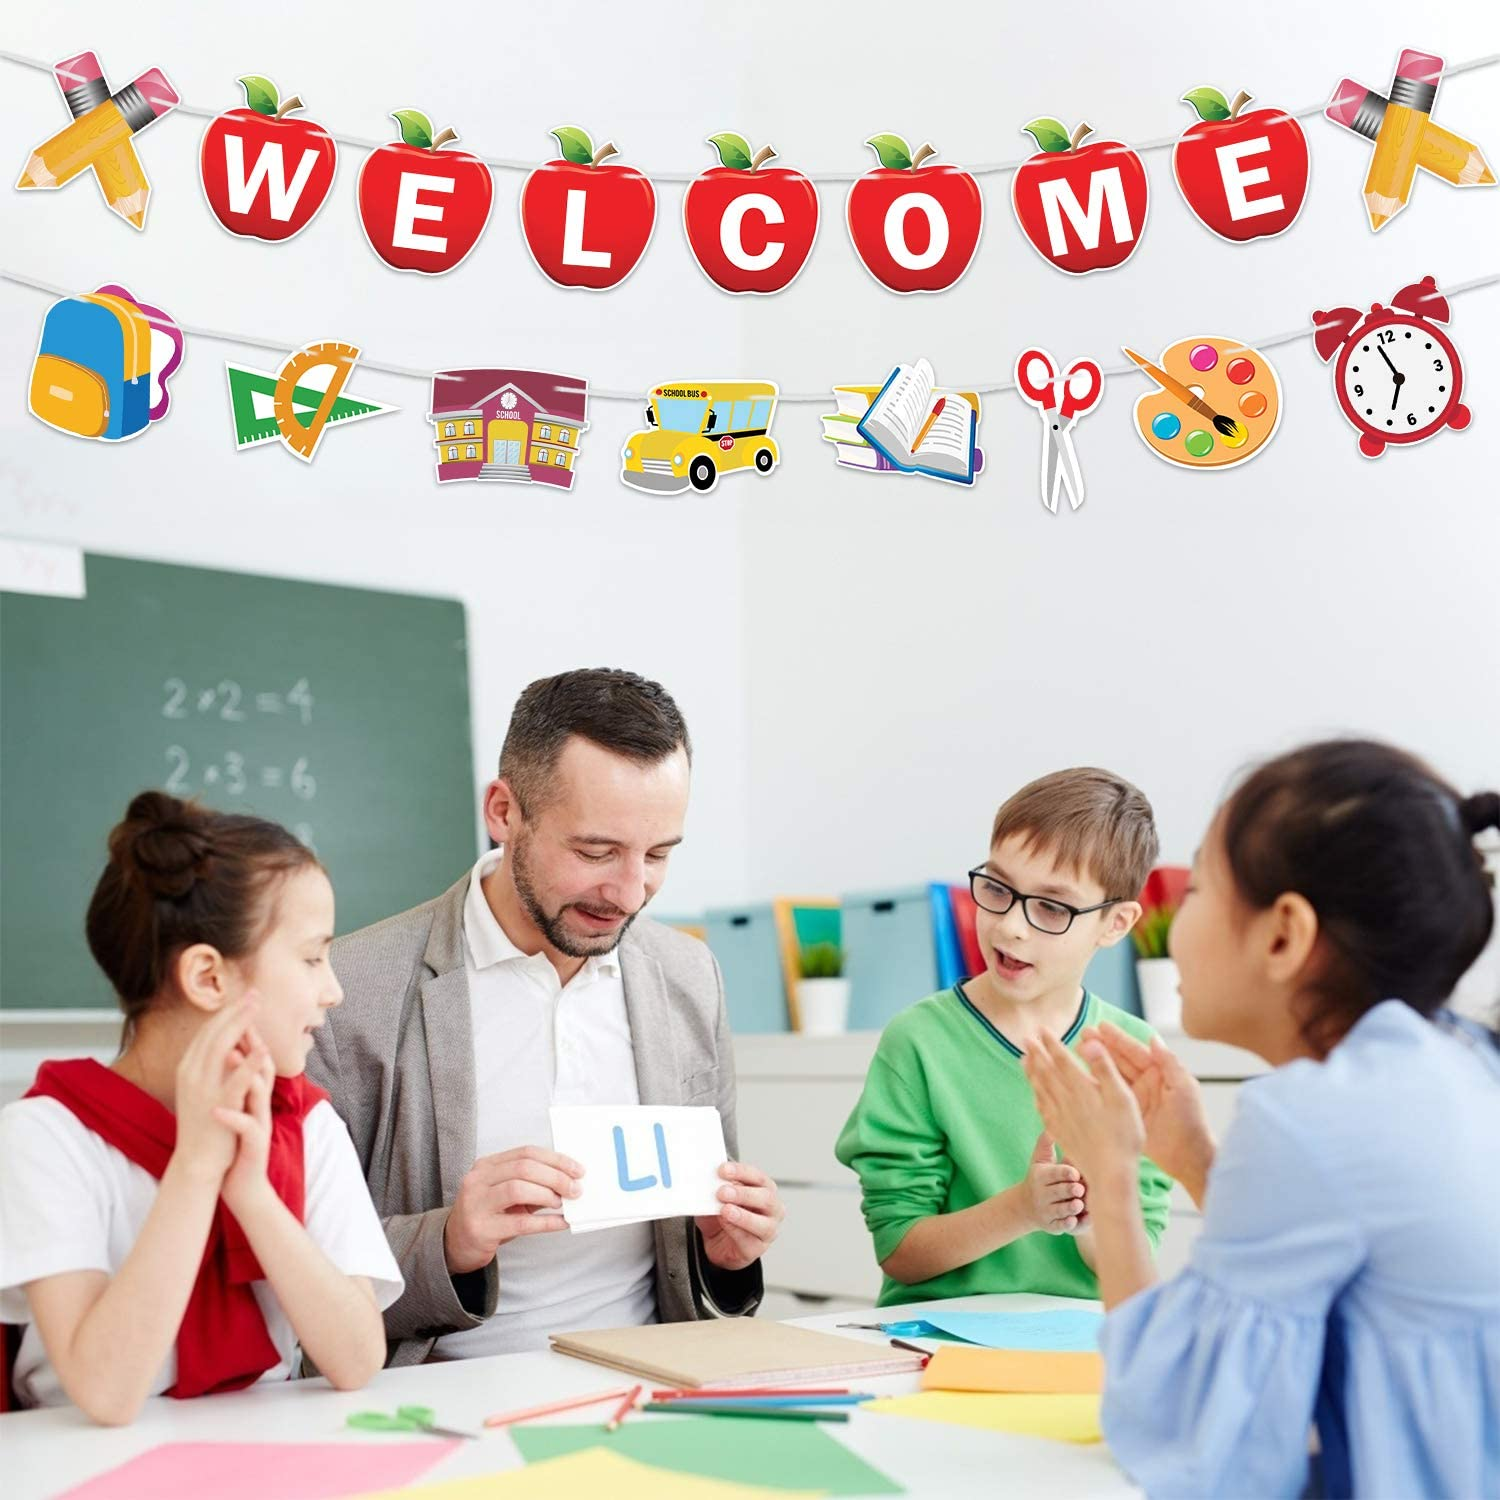 Back to School Decorations Party Supplies Welcome First Day of School Classroom Office Hanging Decor Welcome Garland Banner Welcome Banner Decorations